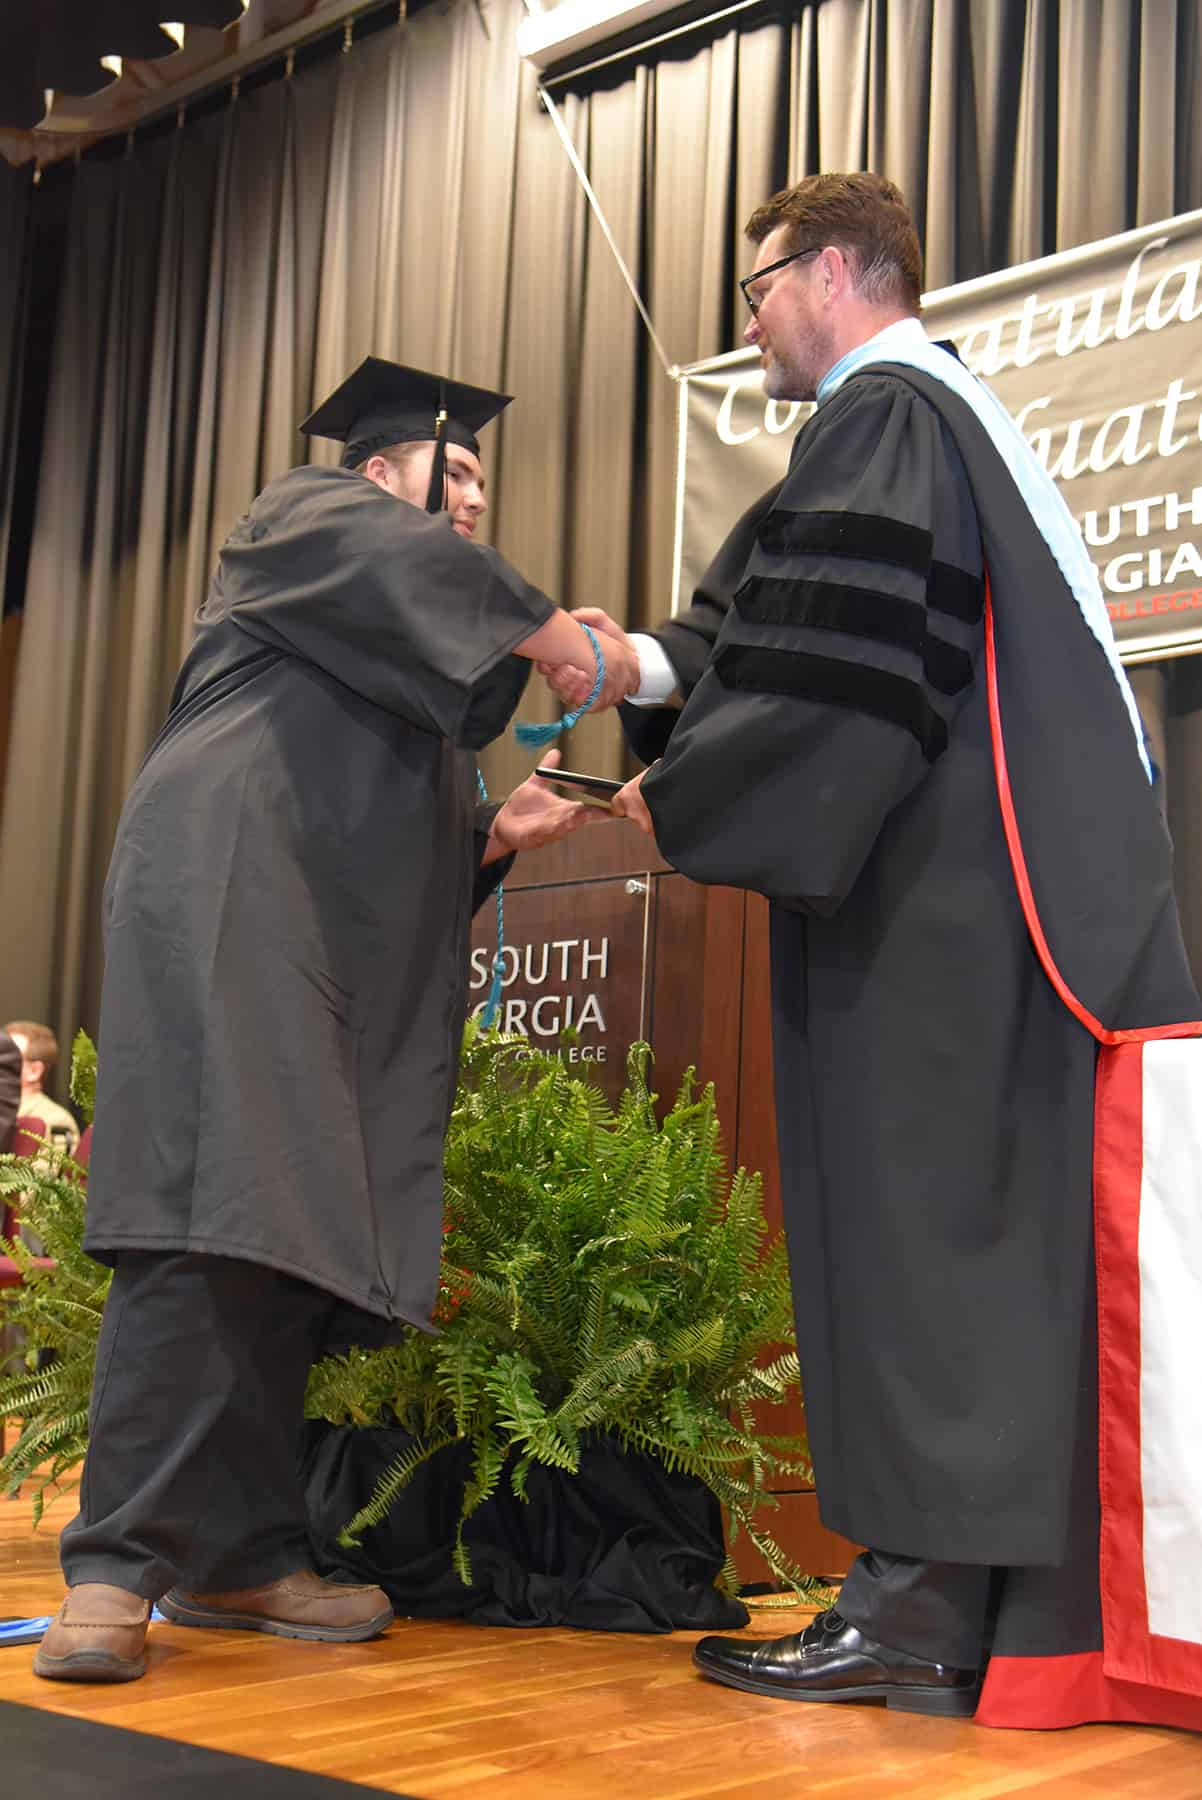 A student wearing a black graduation cap and gown accepts a diploma from a man.